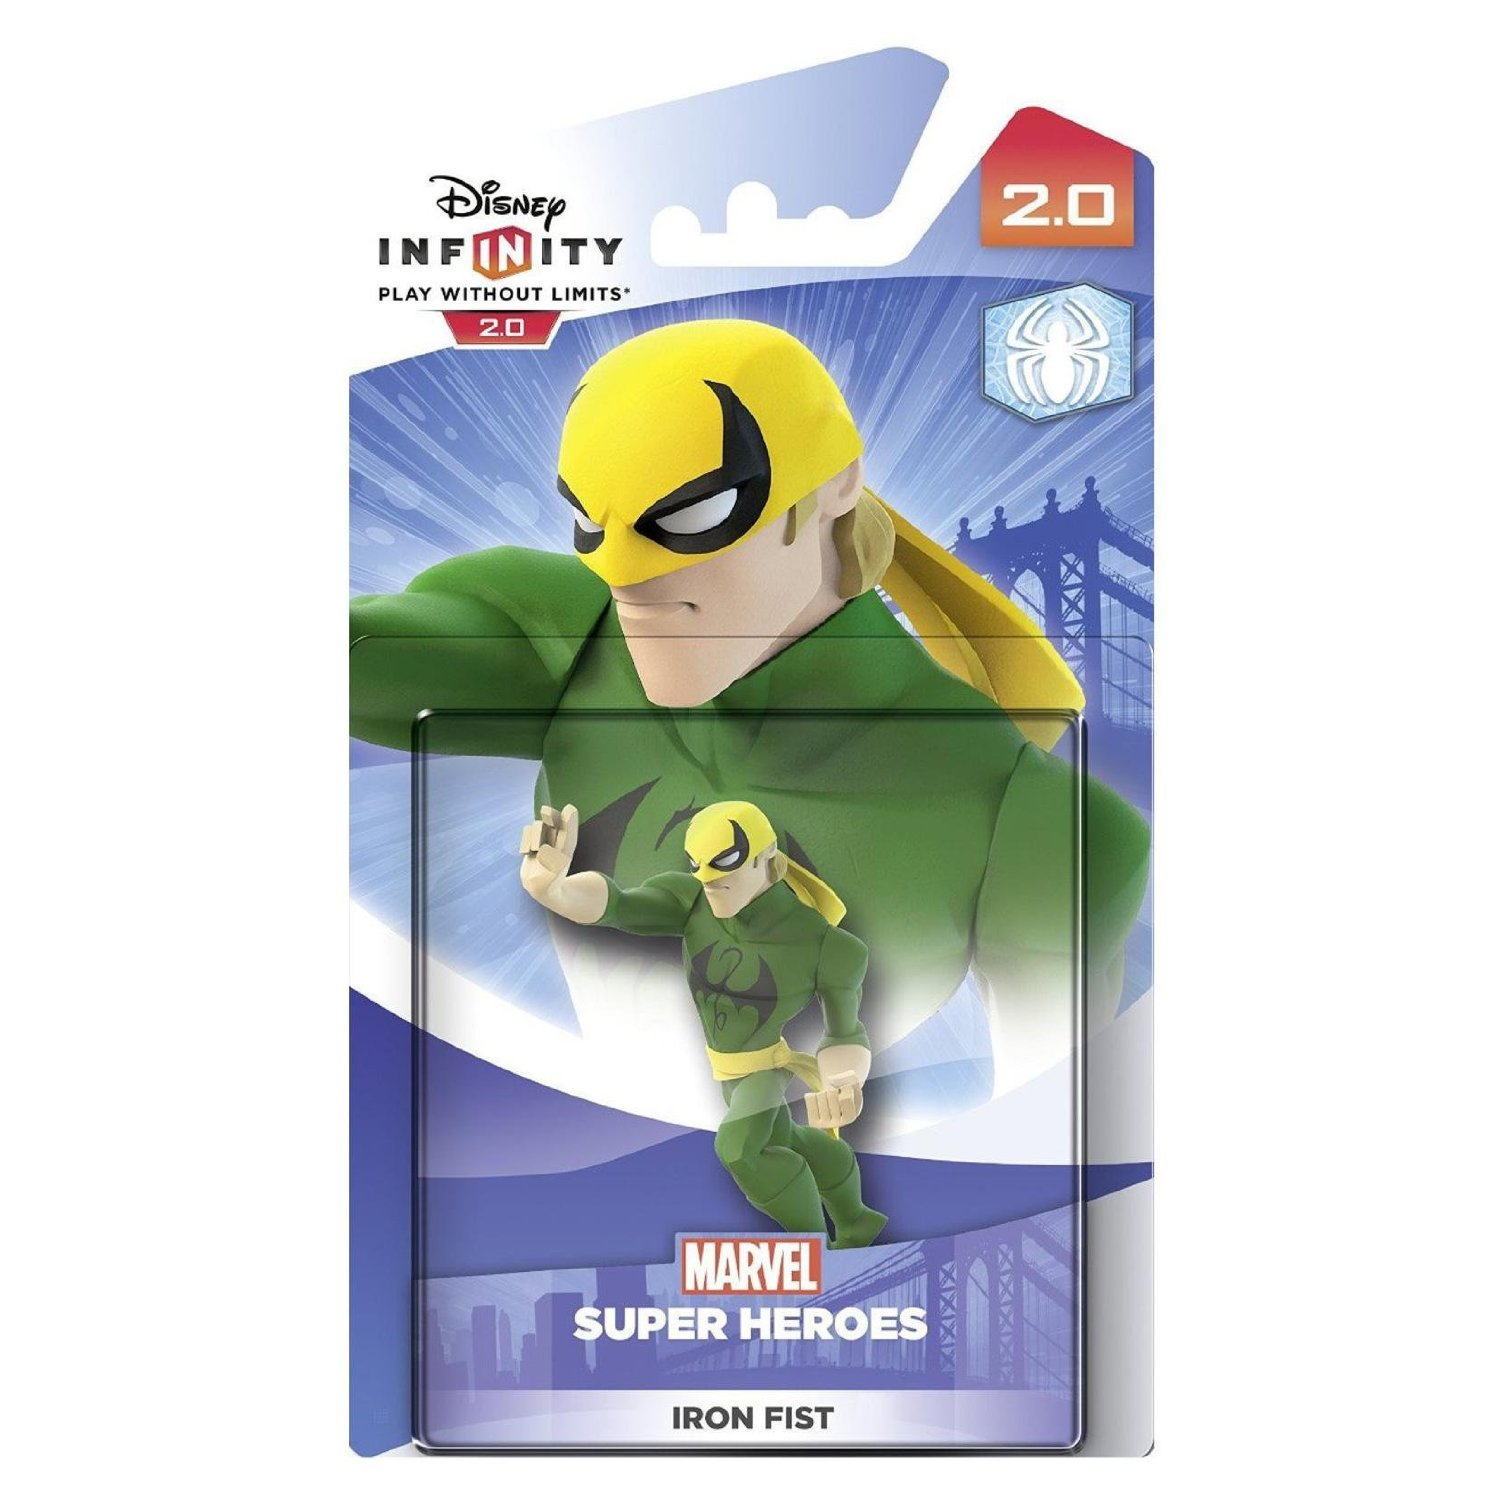 Disney Infinity 2.0 Iron Fist Figure